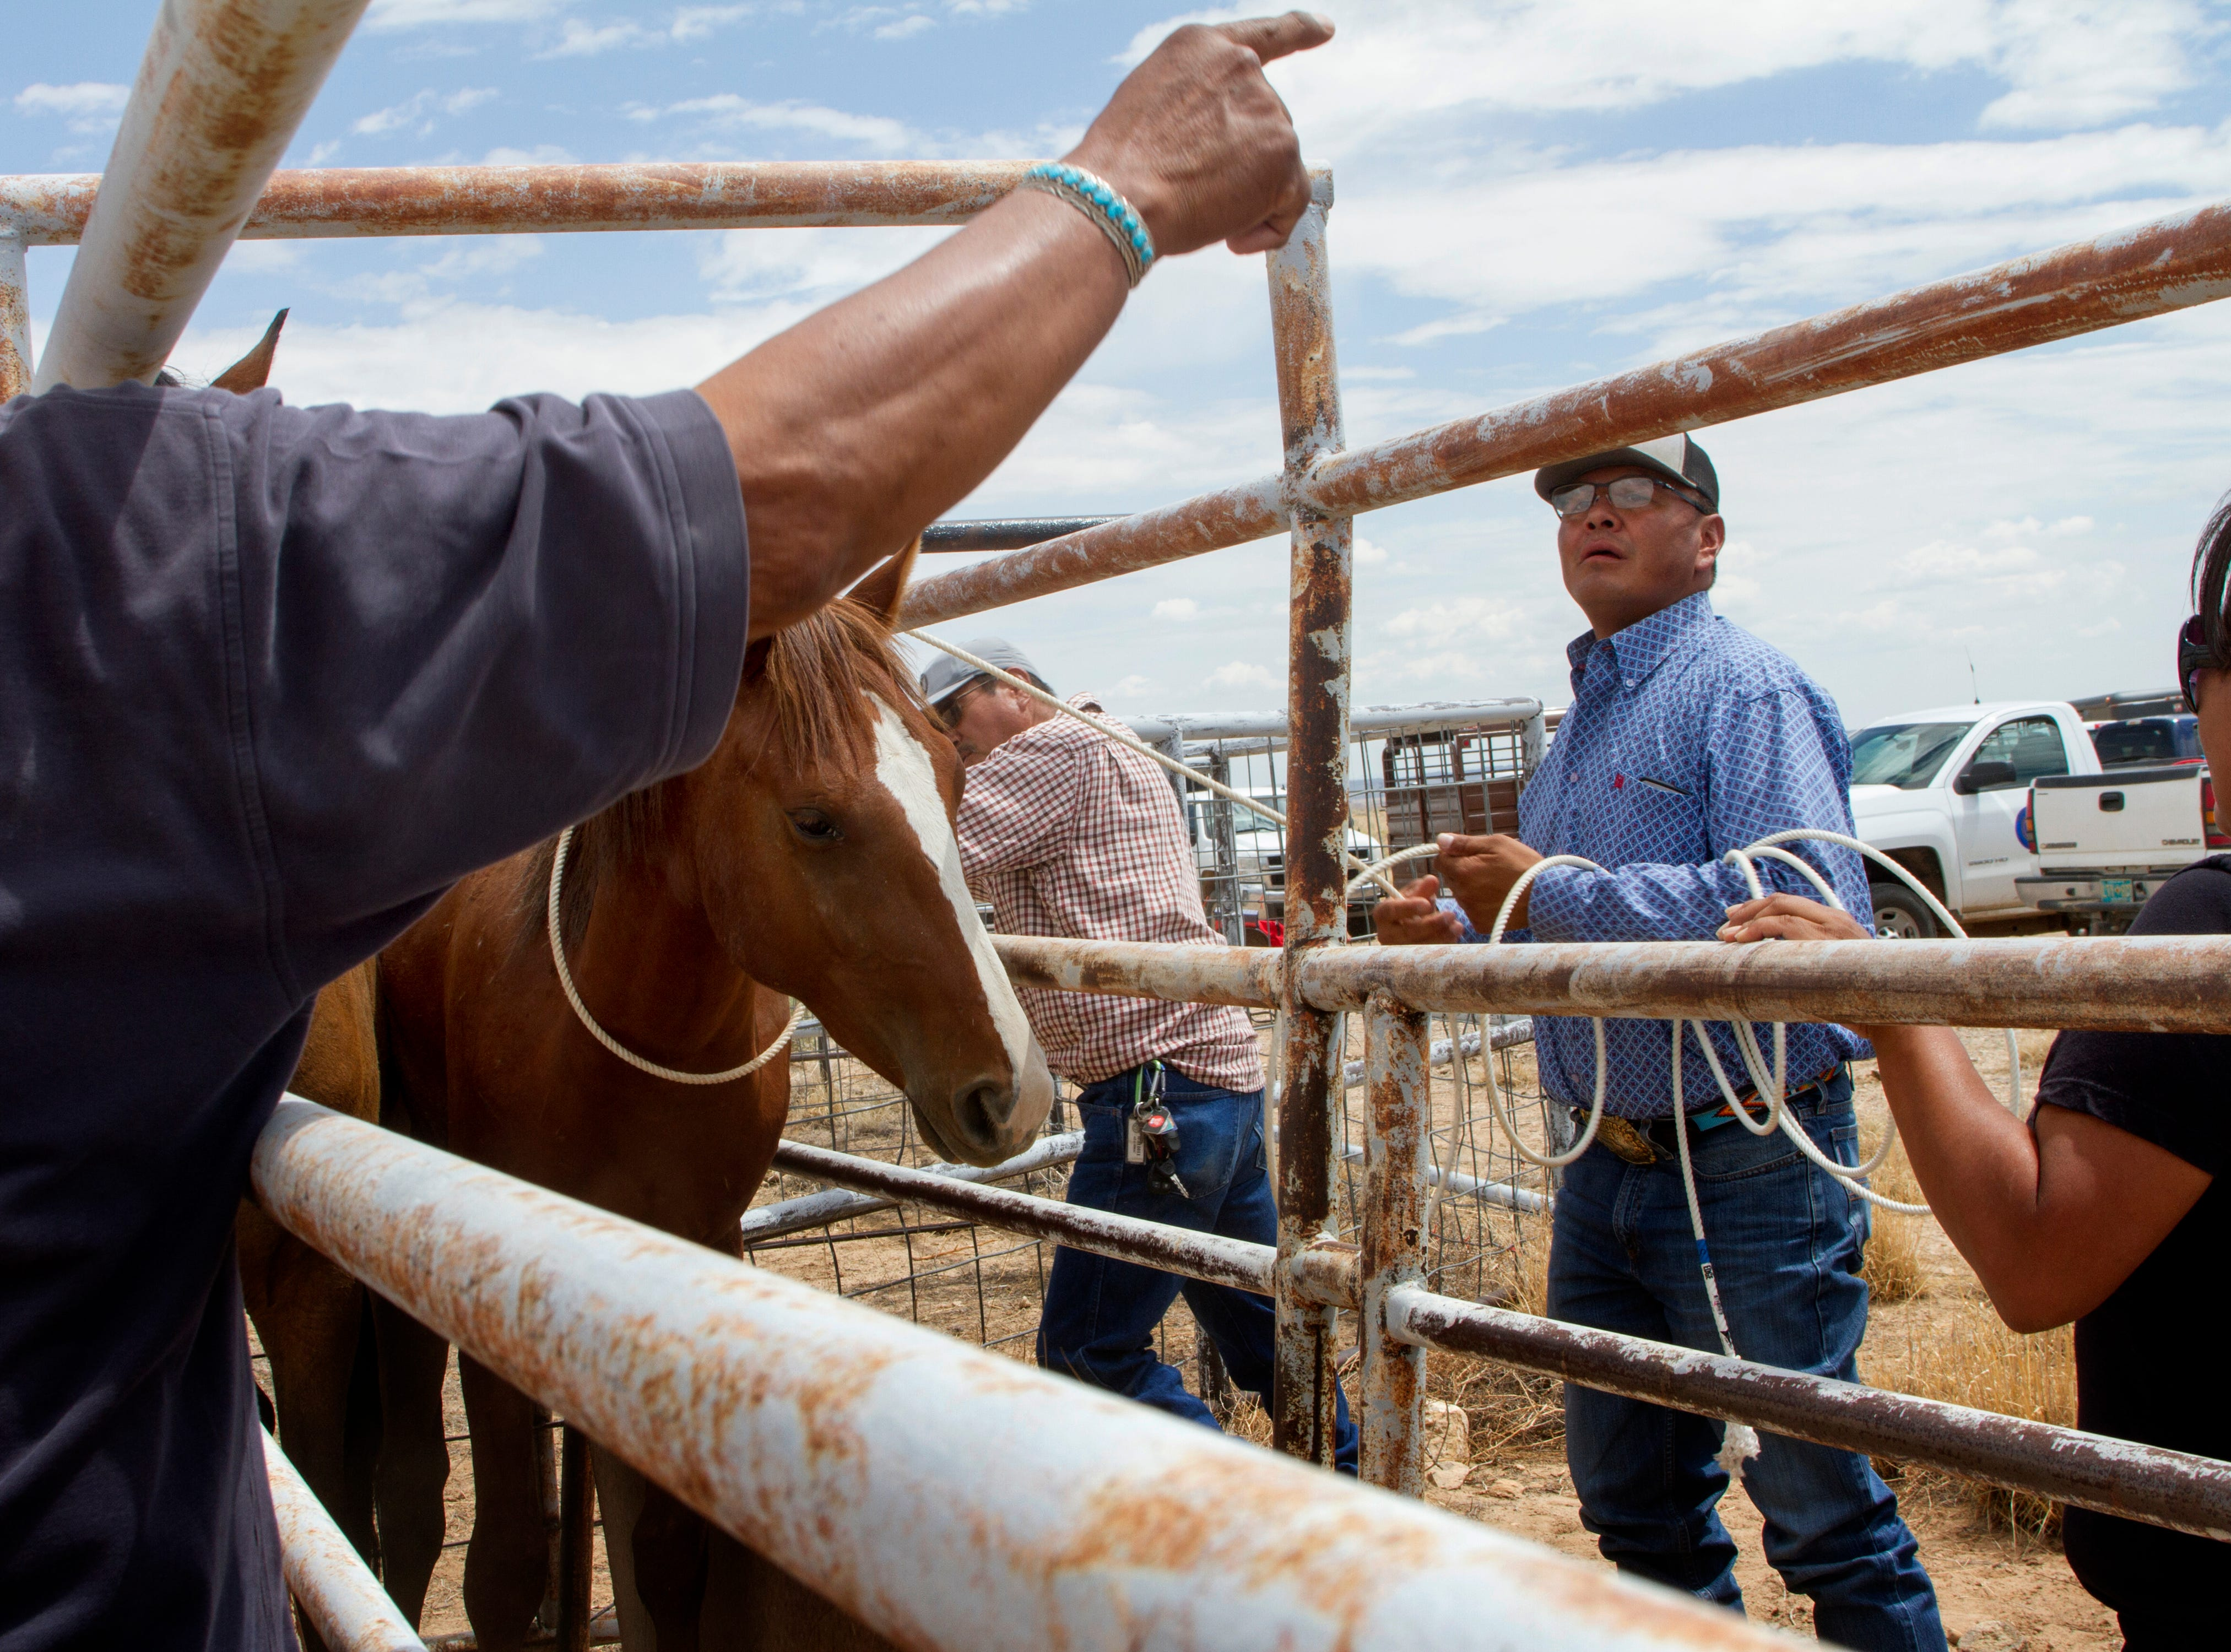 Wayne Franklin, a certified Journeyman farrier with the Navajo Nation Department of Agriculture helps leads horses down a chute, Friday, August 3, 2018 at the auction yard in Naschitti.